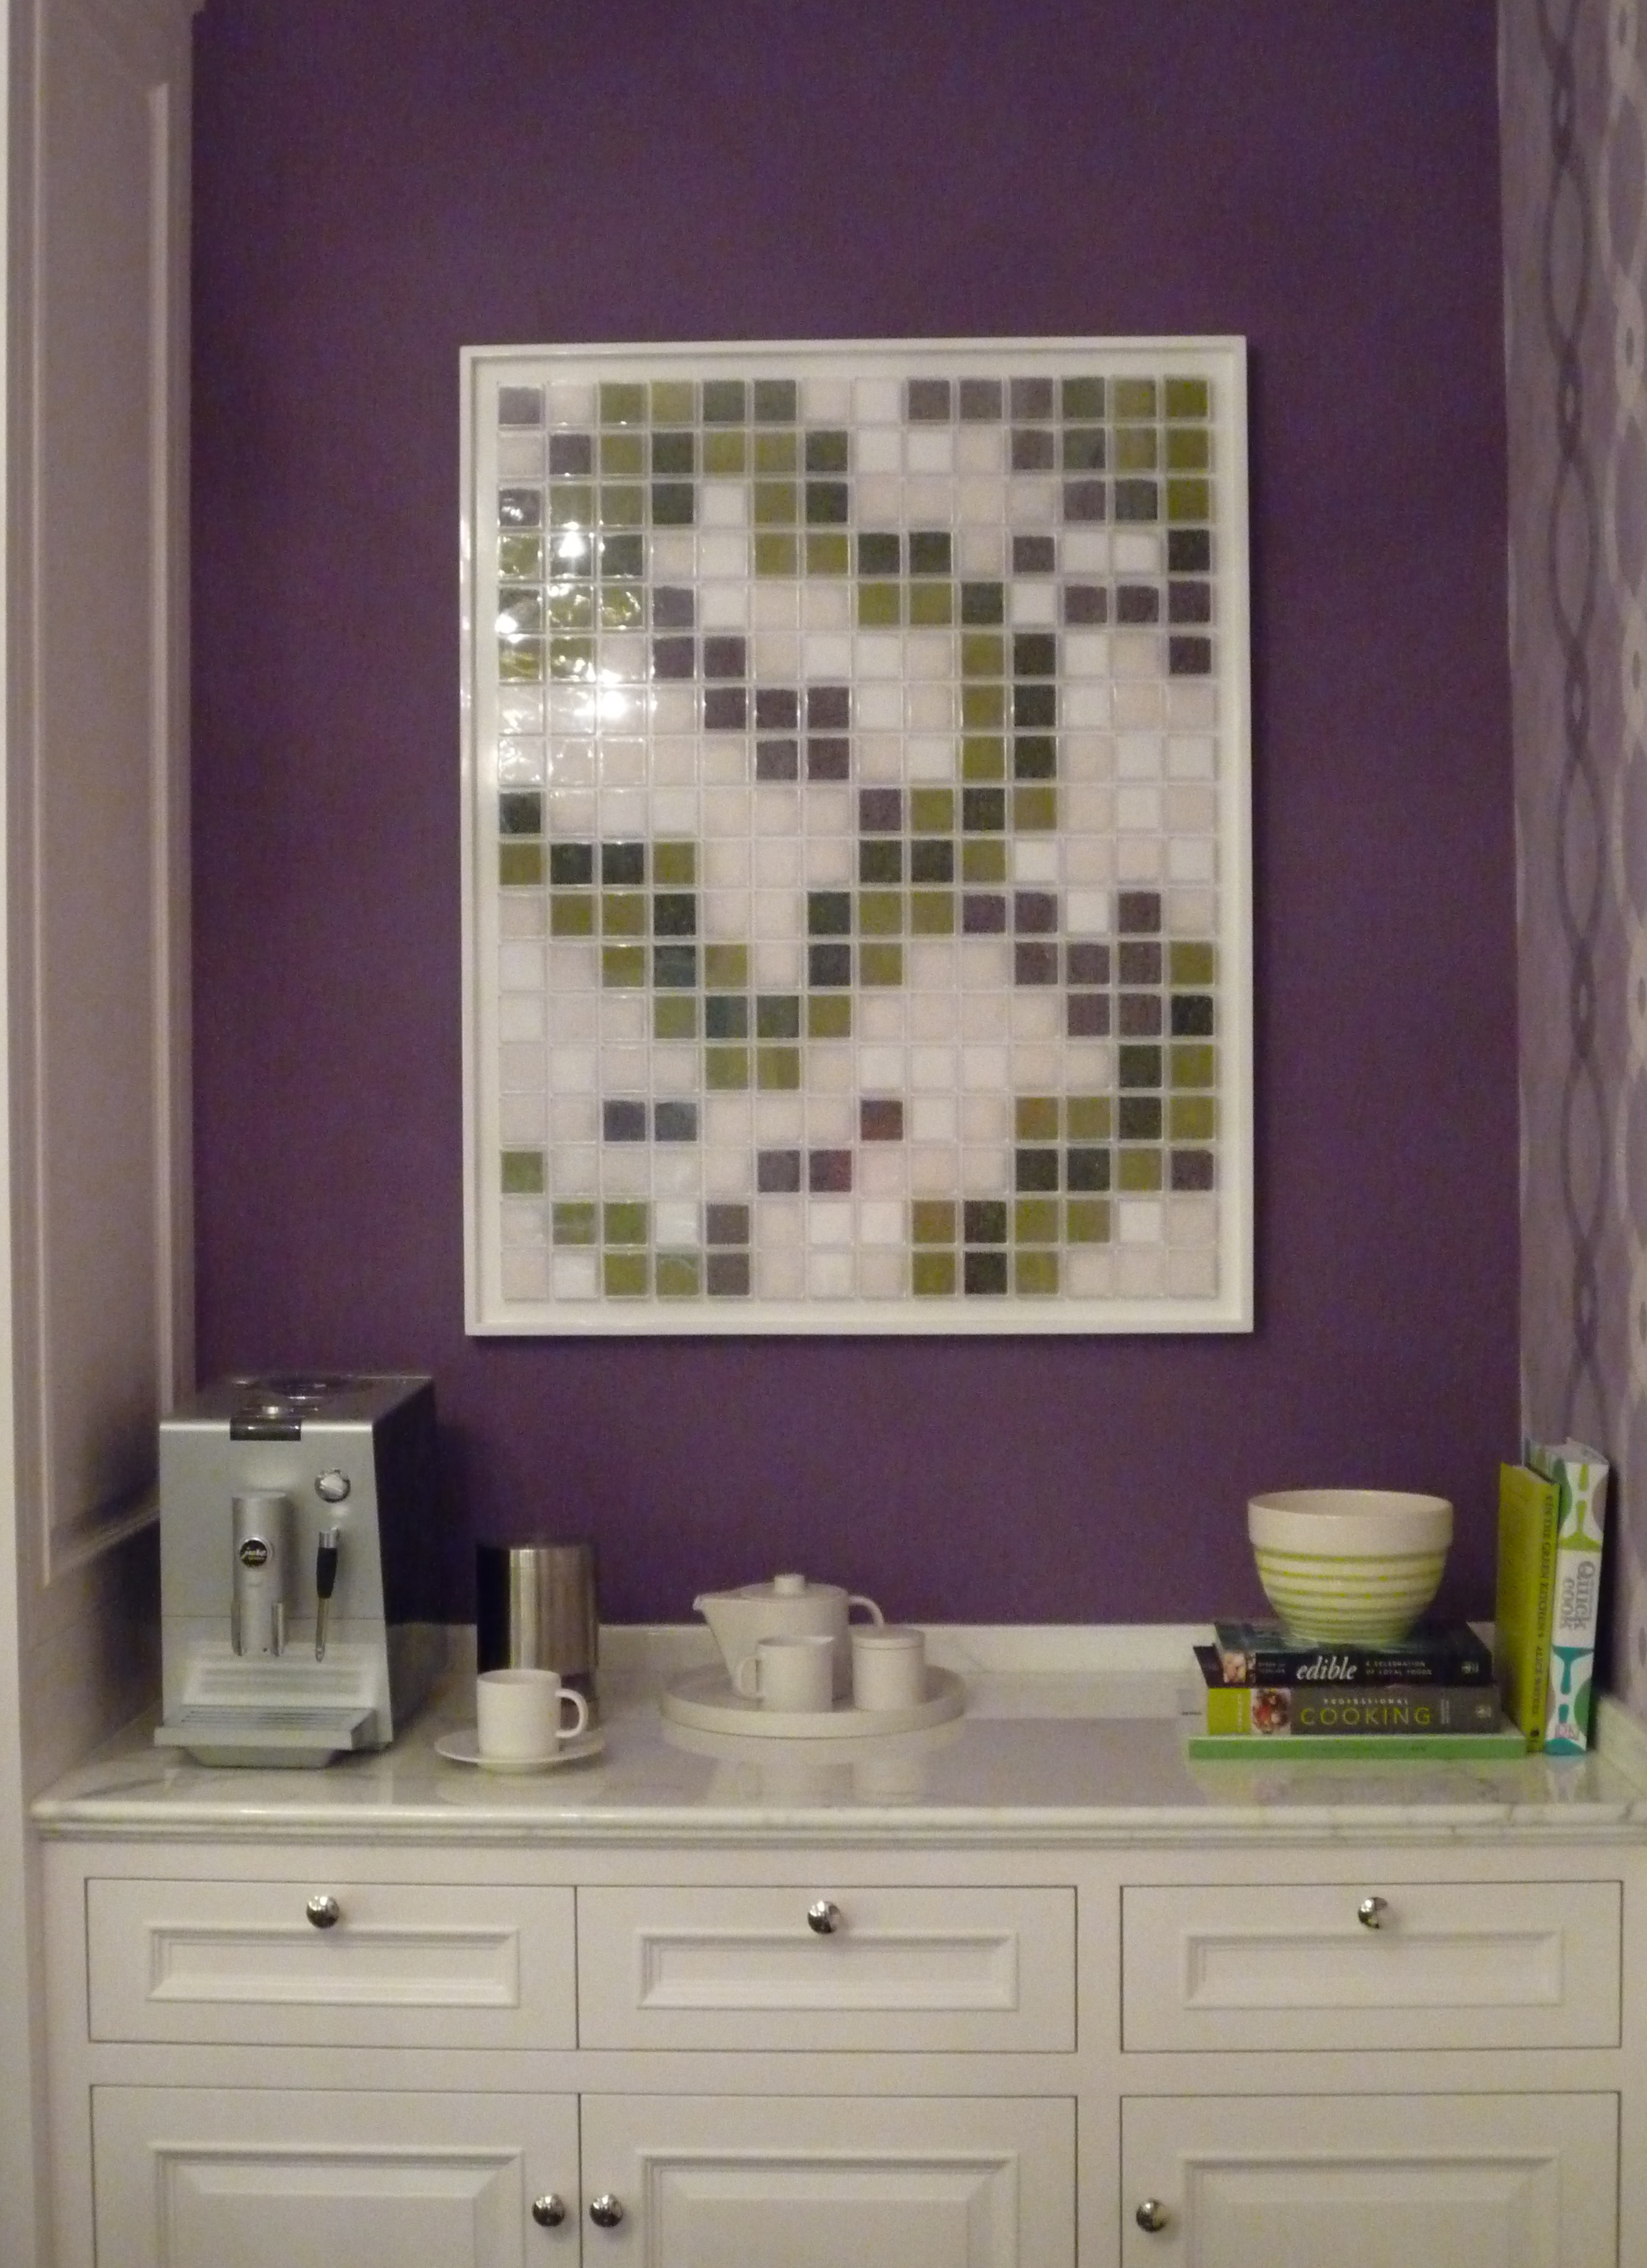 Wallpaper That Looks Like Tile 2015 Best Auto Reviews